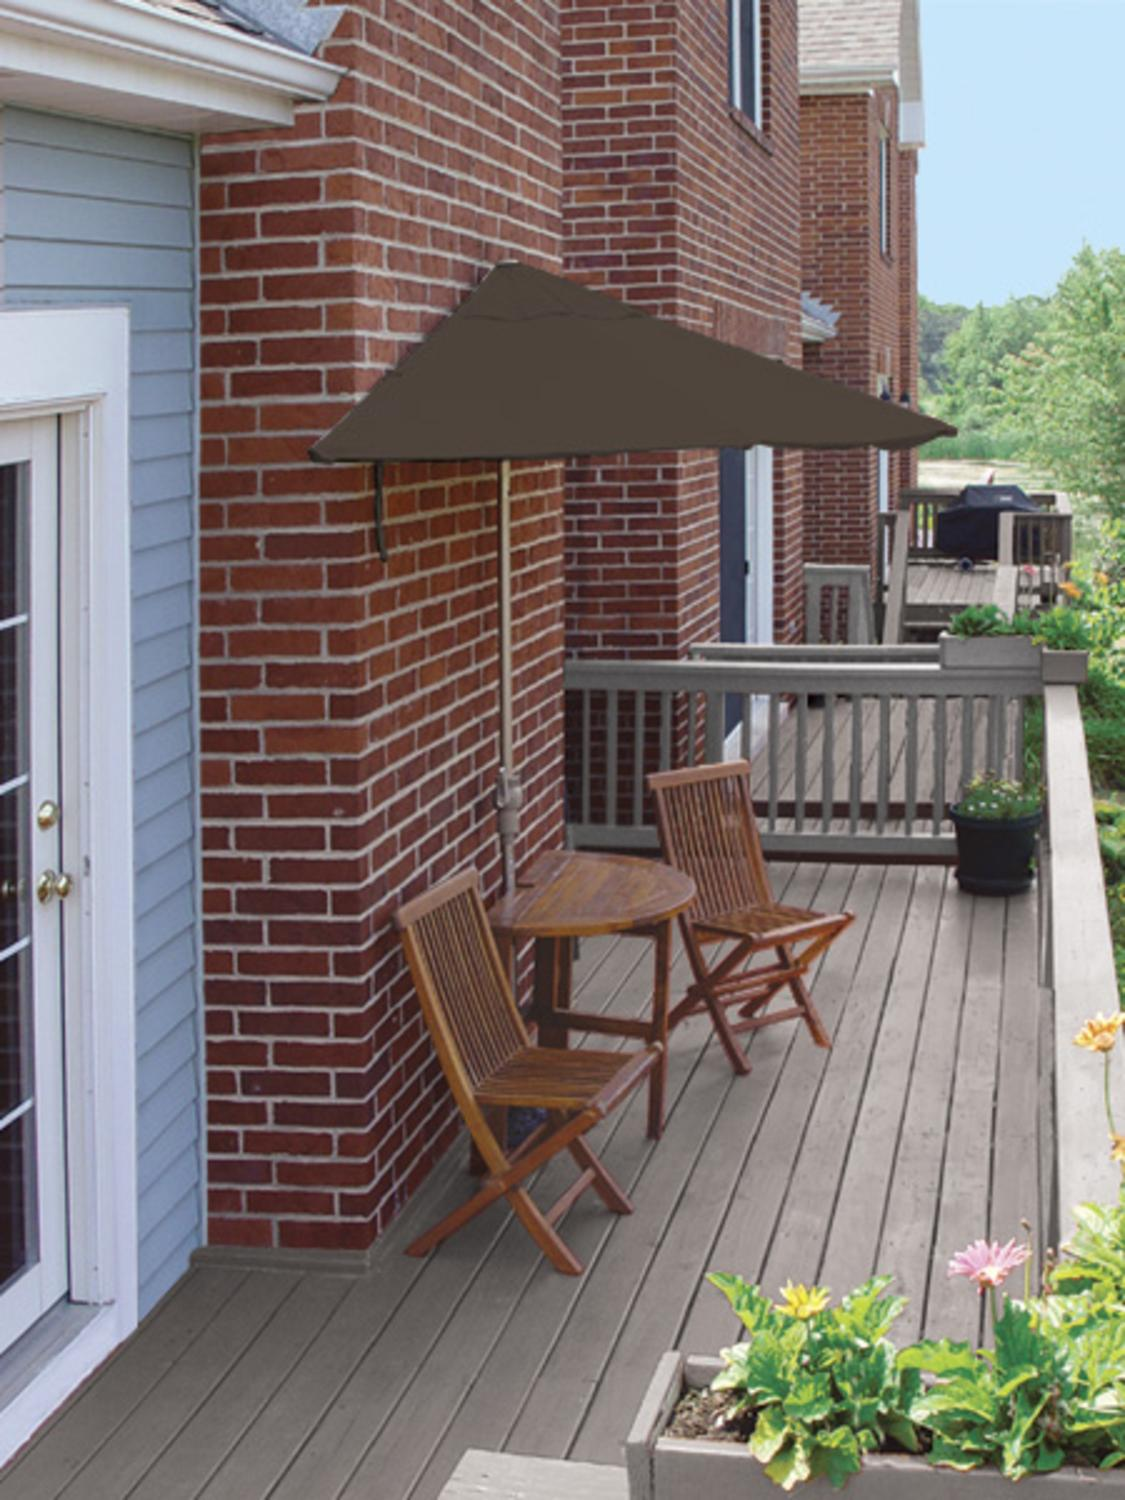 5 Piece Oval Deluxe Nyatoh Wood and Brown Sunbrella Patio Furniture Set 7.5' by CC Home Furnishings